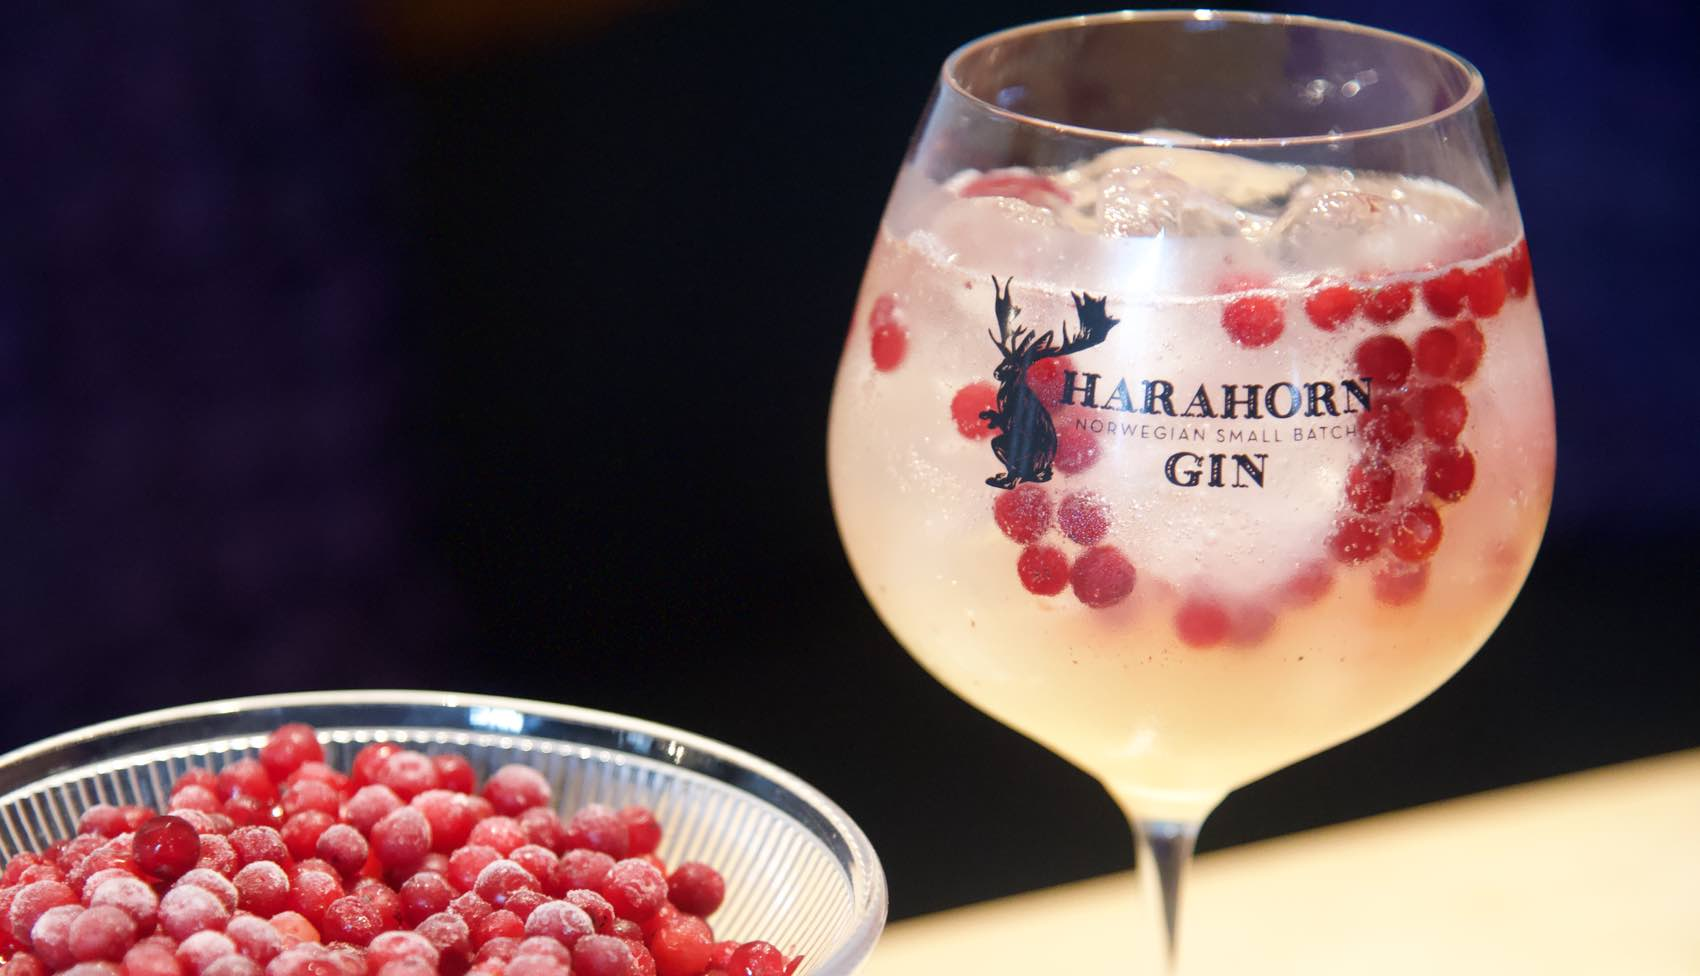 Arctic Collins - with Harahorn Gin and fresh and sour lingonberry.